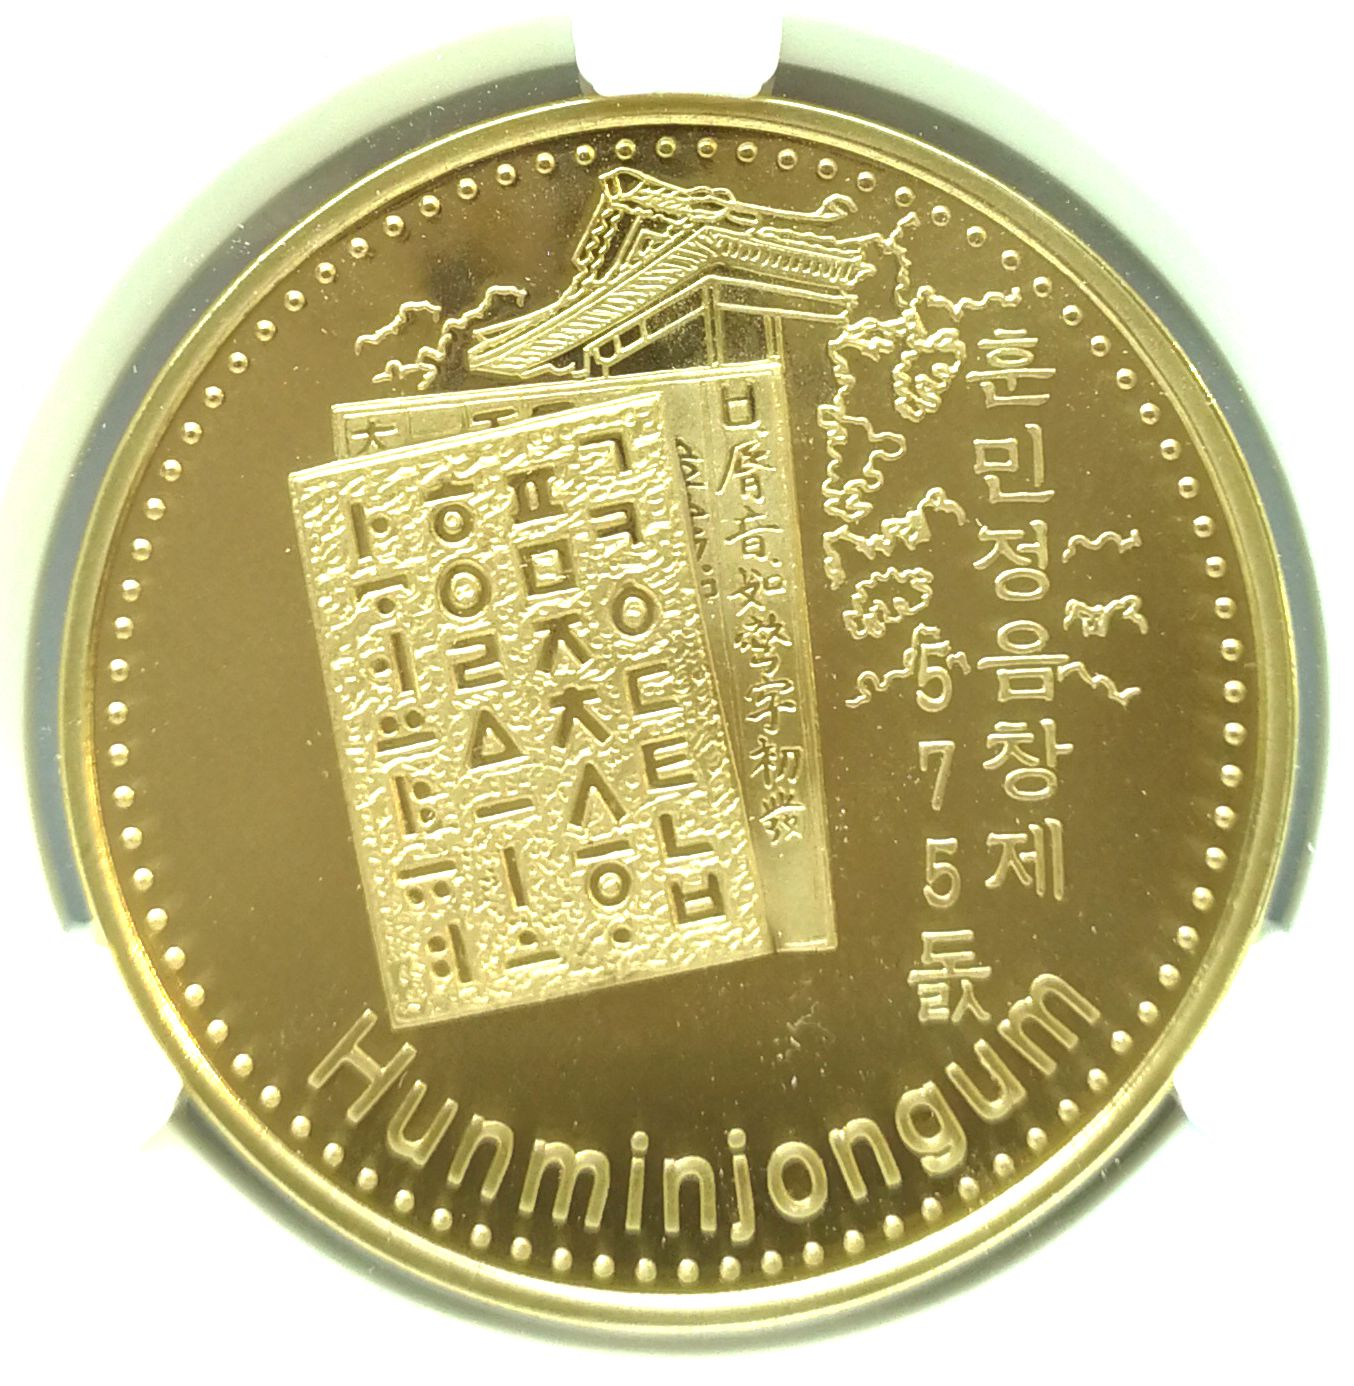 "L3378, Korea Proof Coin ""Hunminjongum, Korean Alphabet System"", Brass 2019"